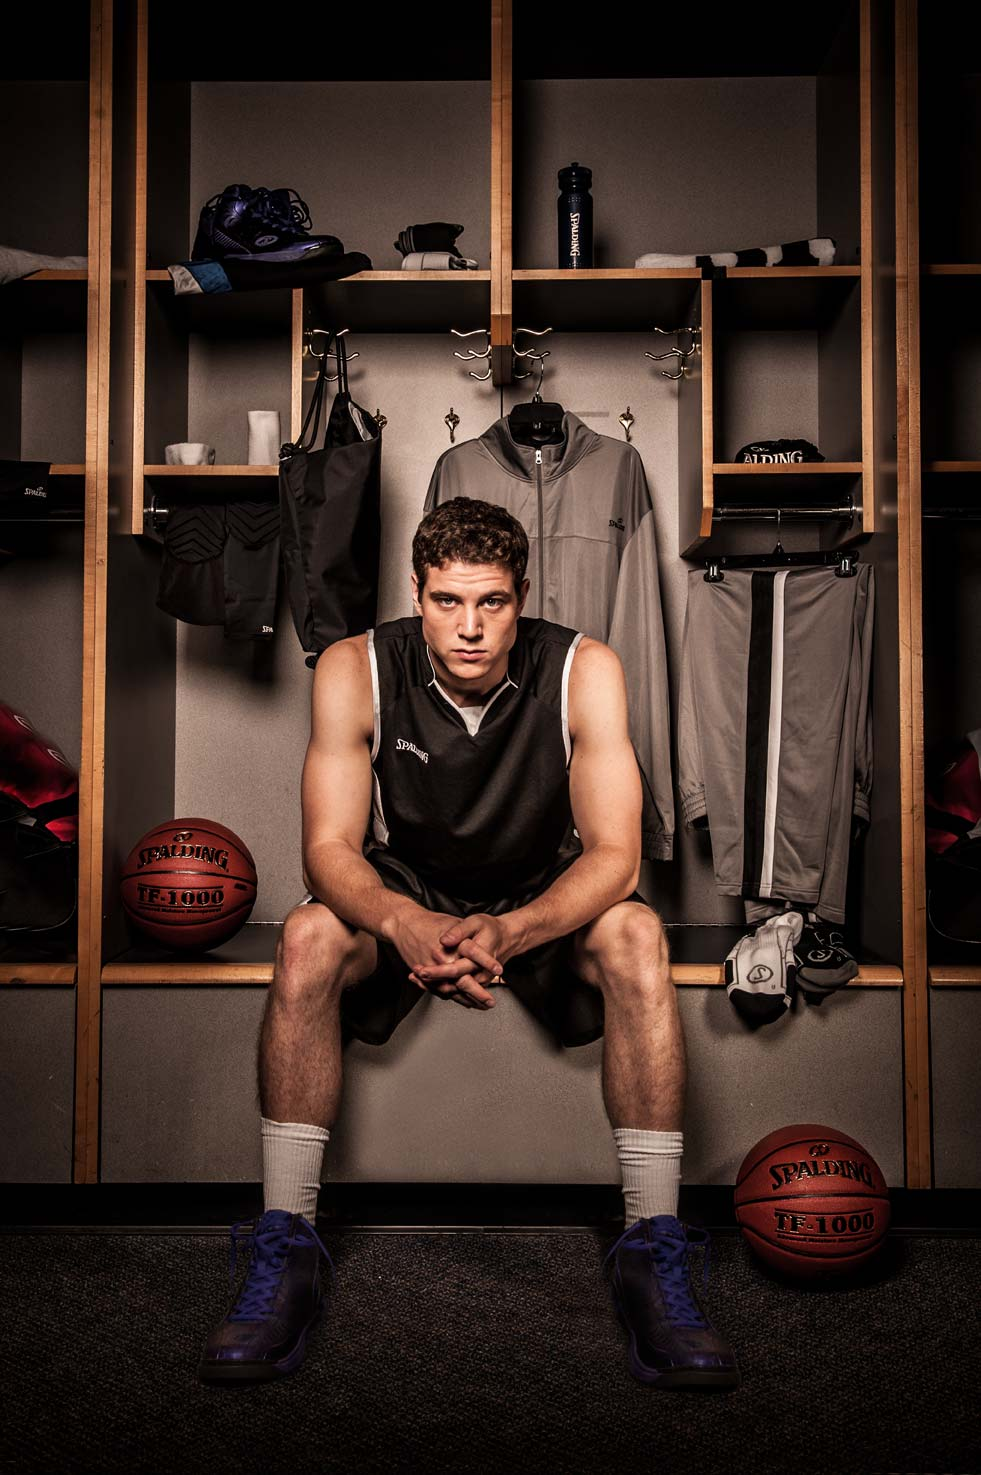 Jimmer Fredette seated in a basketball locker room giving his game face